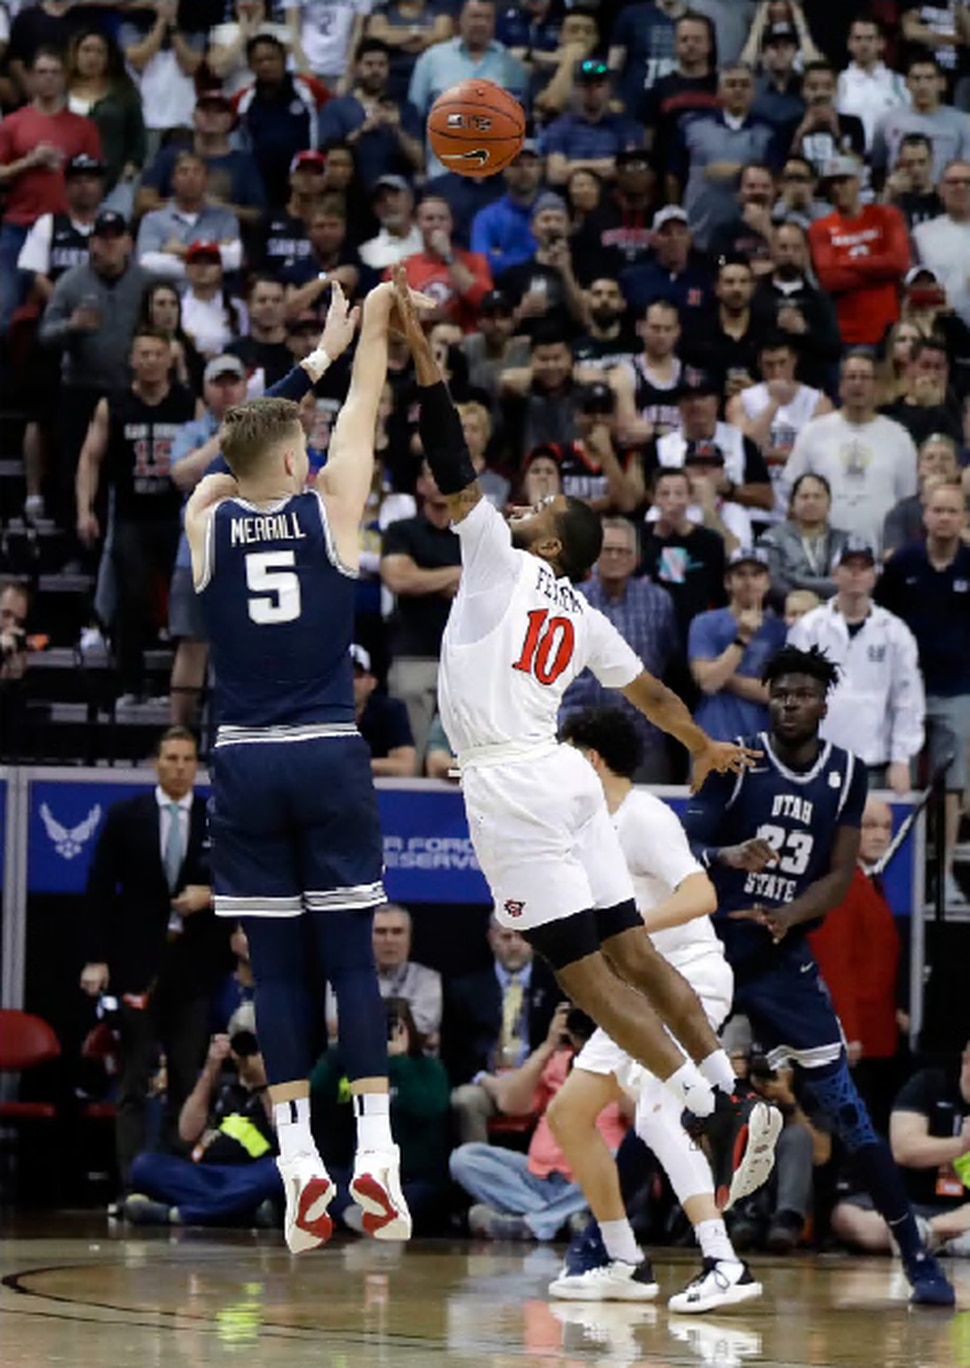 Utah State's Sam Merrill (5) sinks a 3-point shot as San Diego State's KJ Feagin defends during final seconds of an NCAA college basketball game for the Mountain West Conference men's tournament championship Saturday, March 7, 2020, in Las Vegas. (AP Photo/Isaac Brekken)